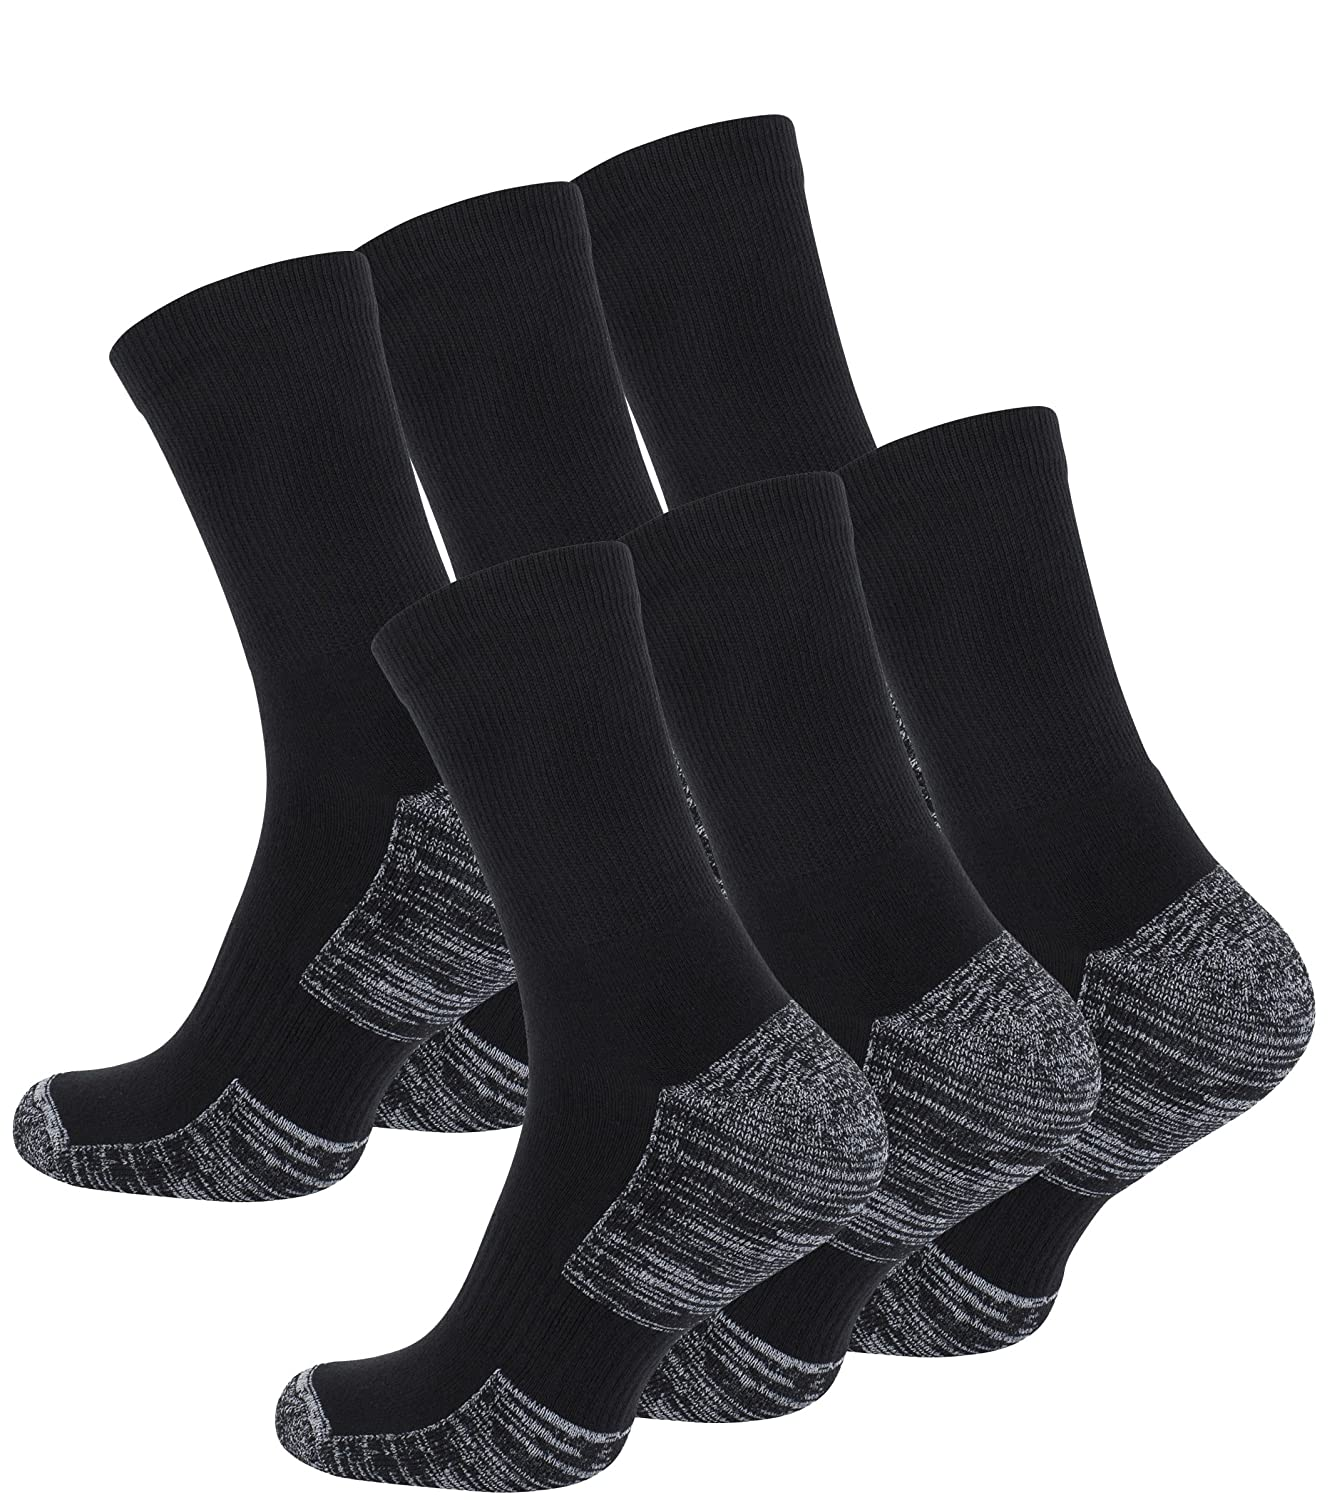 6 Pairs of Hiking & Trekking Socks, Outdoor Socks, with Terry Sole, UNISEX 2103